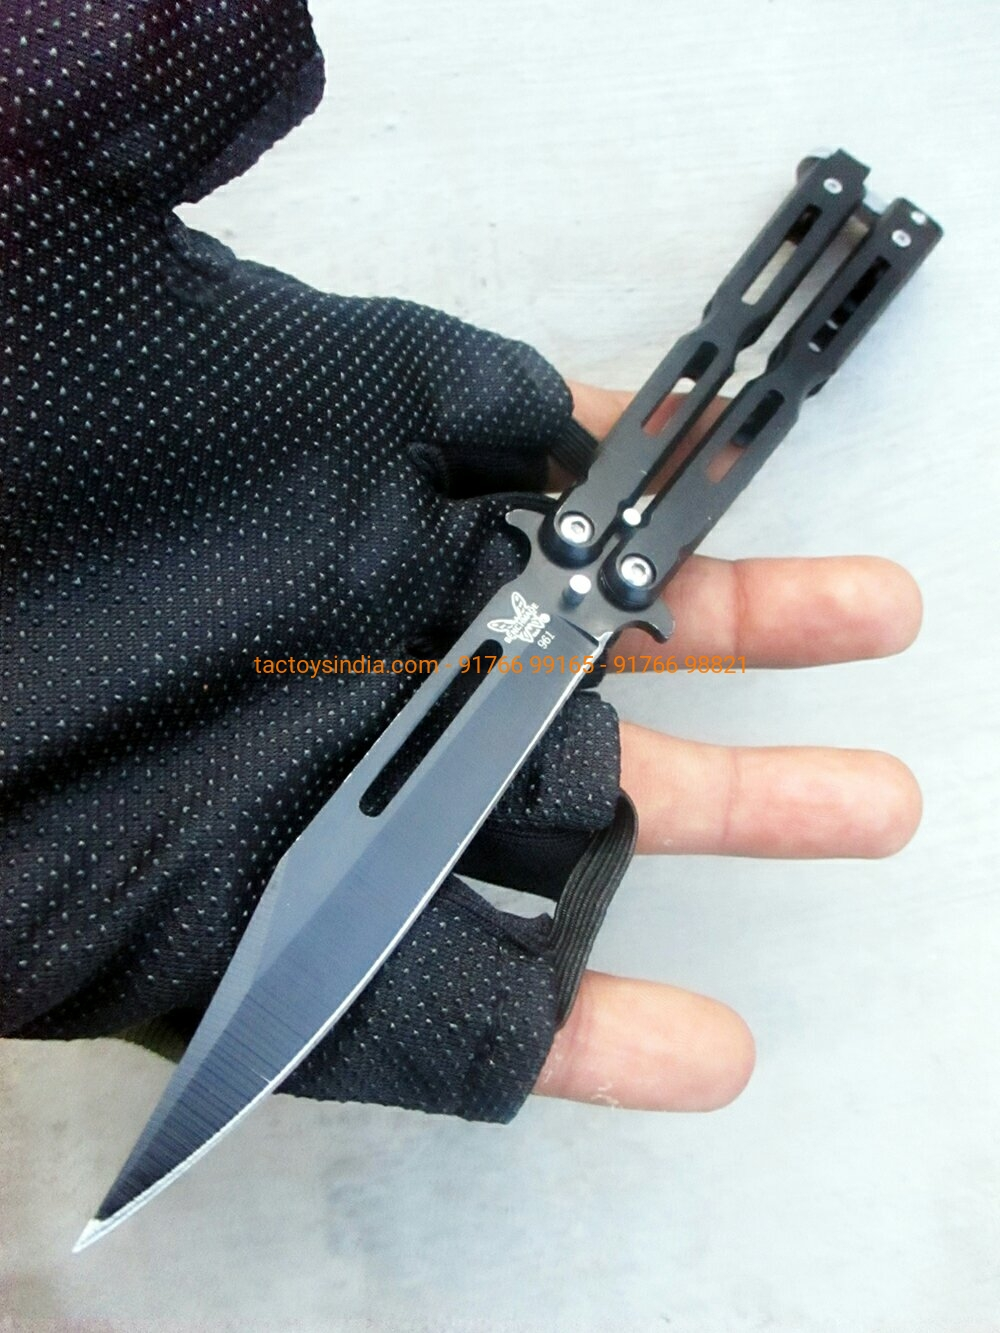 Benchmade Balisong 961 Black Razor Sharp Butterfly knife Flipper's Edition  Tactoys India